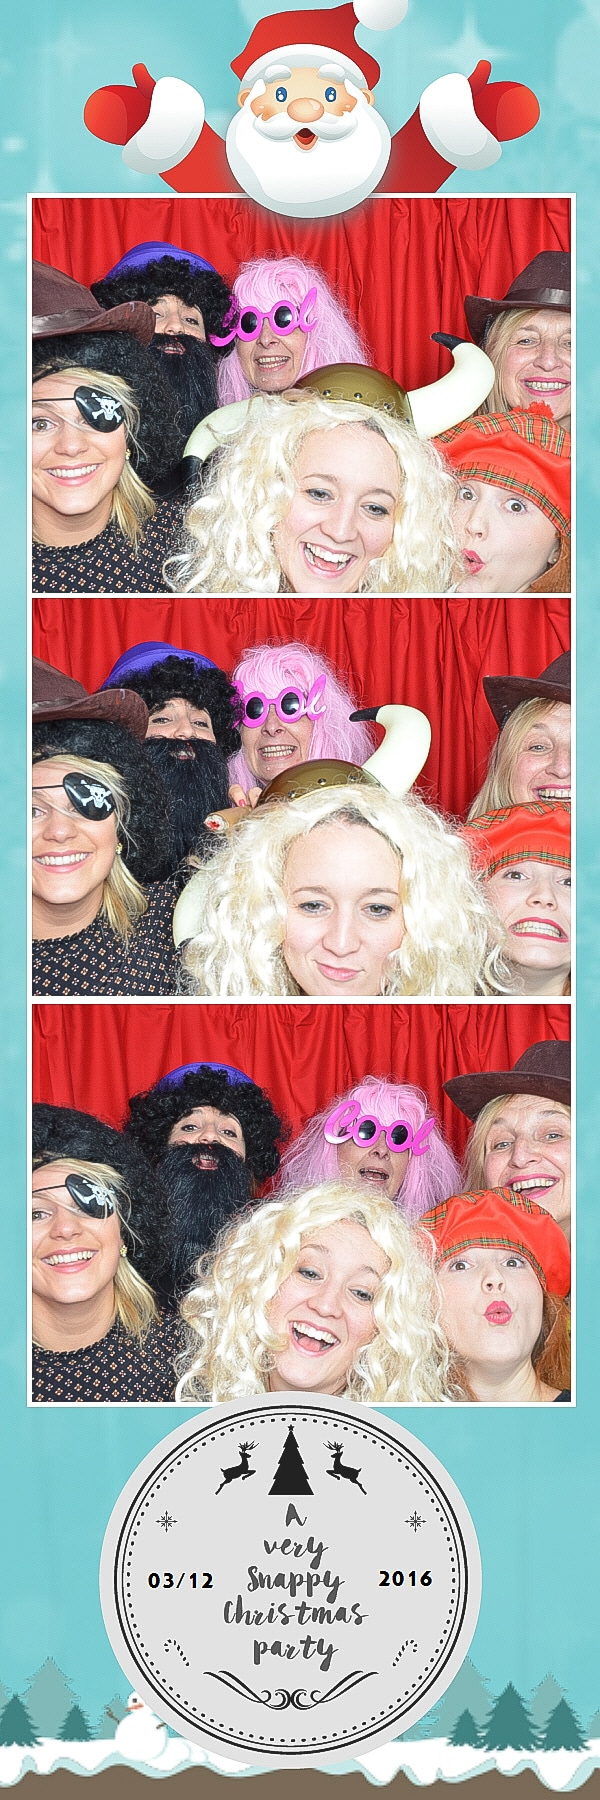 6 people in the work xmas party booth